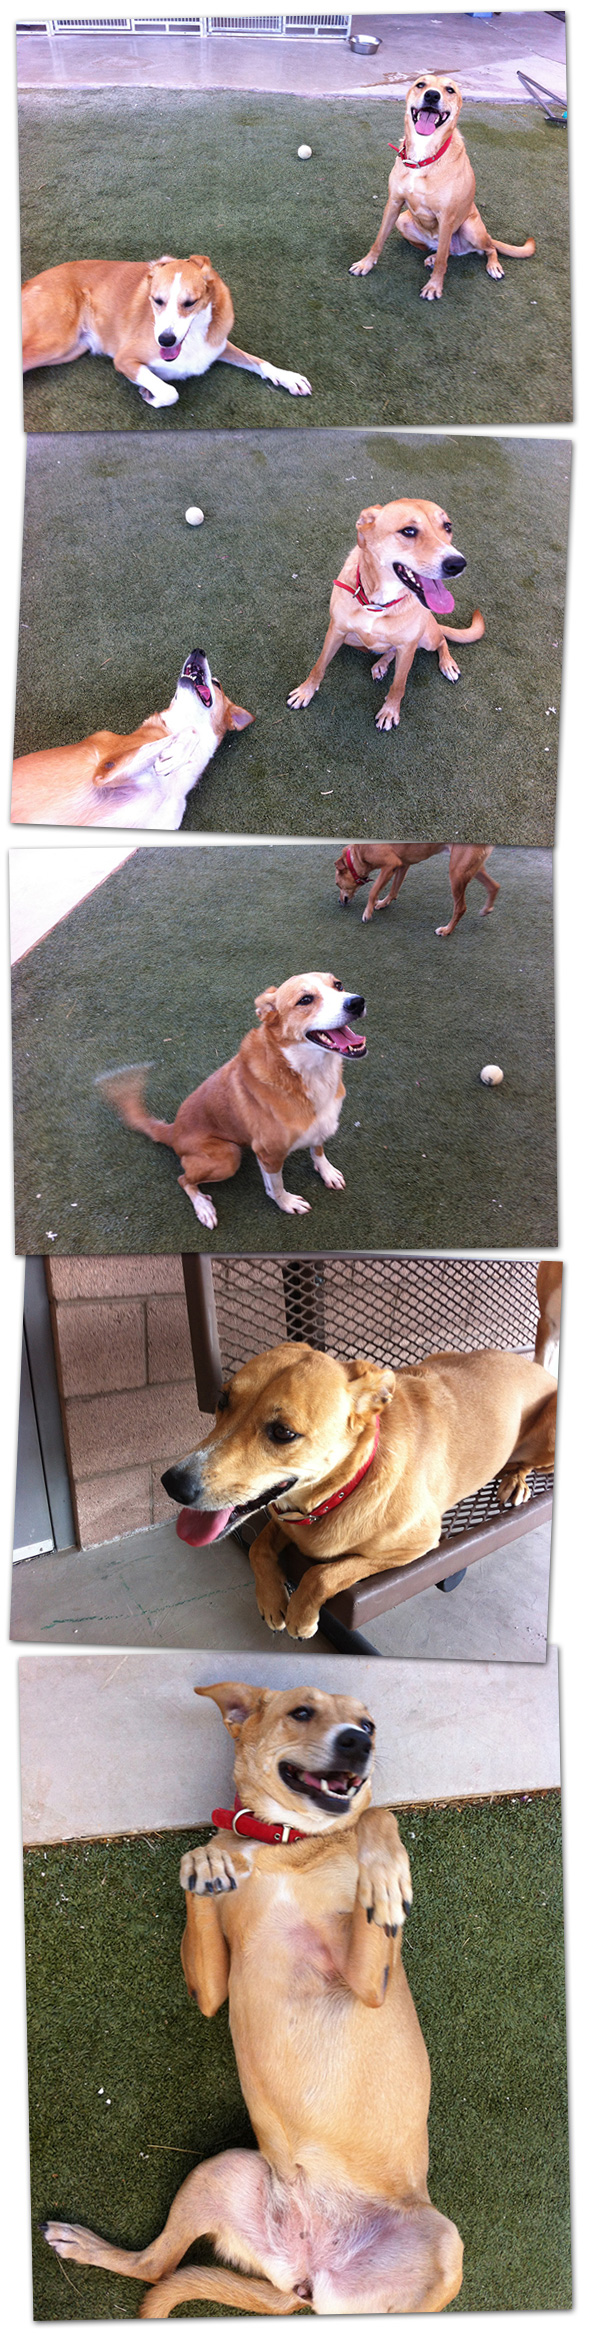 Dogs for Adoption in Boulder City, Nevada